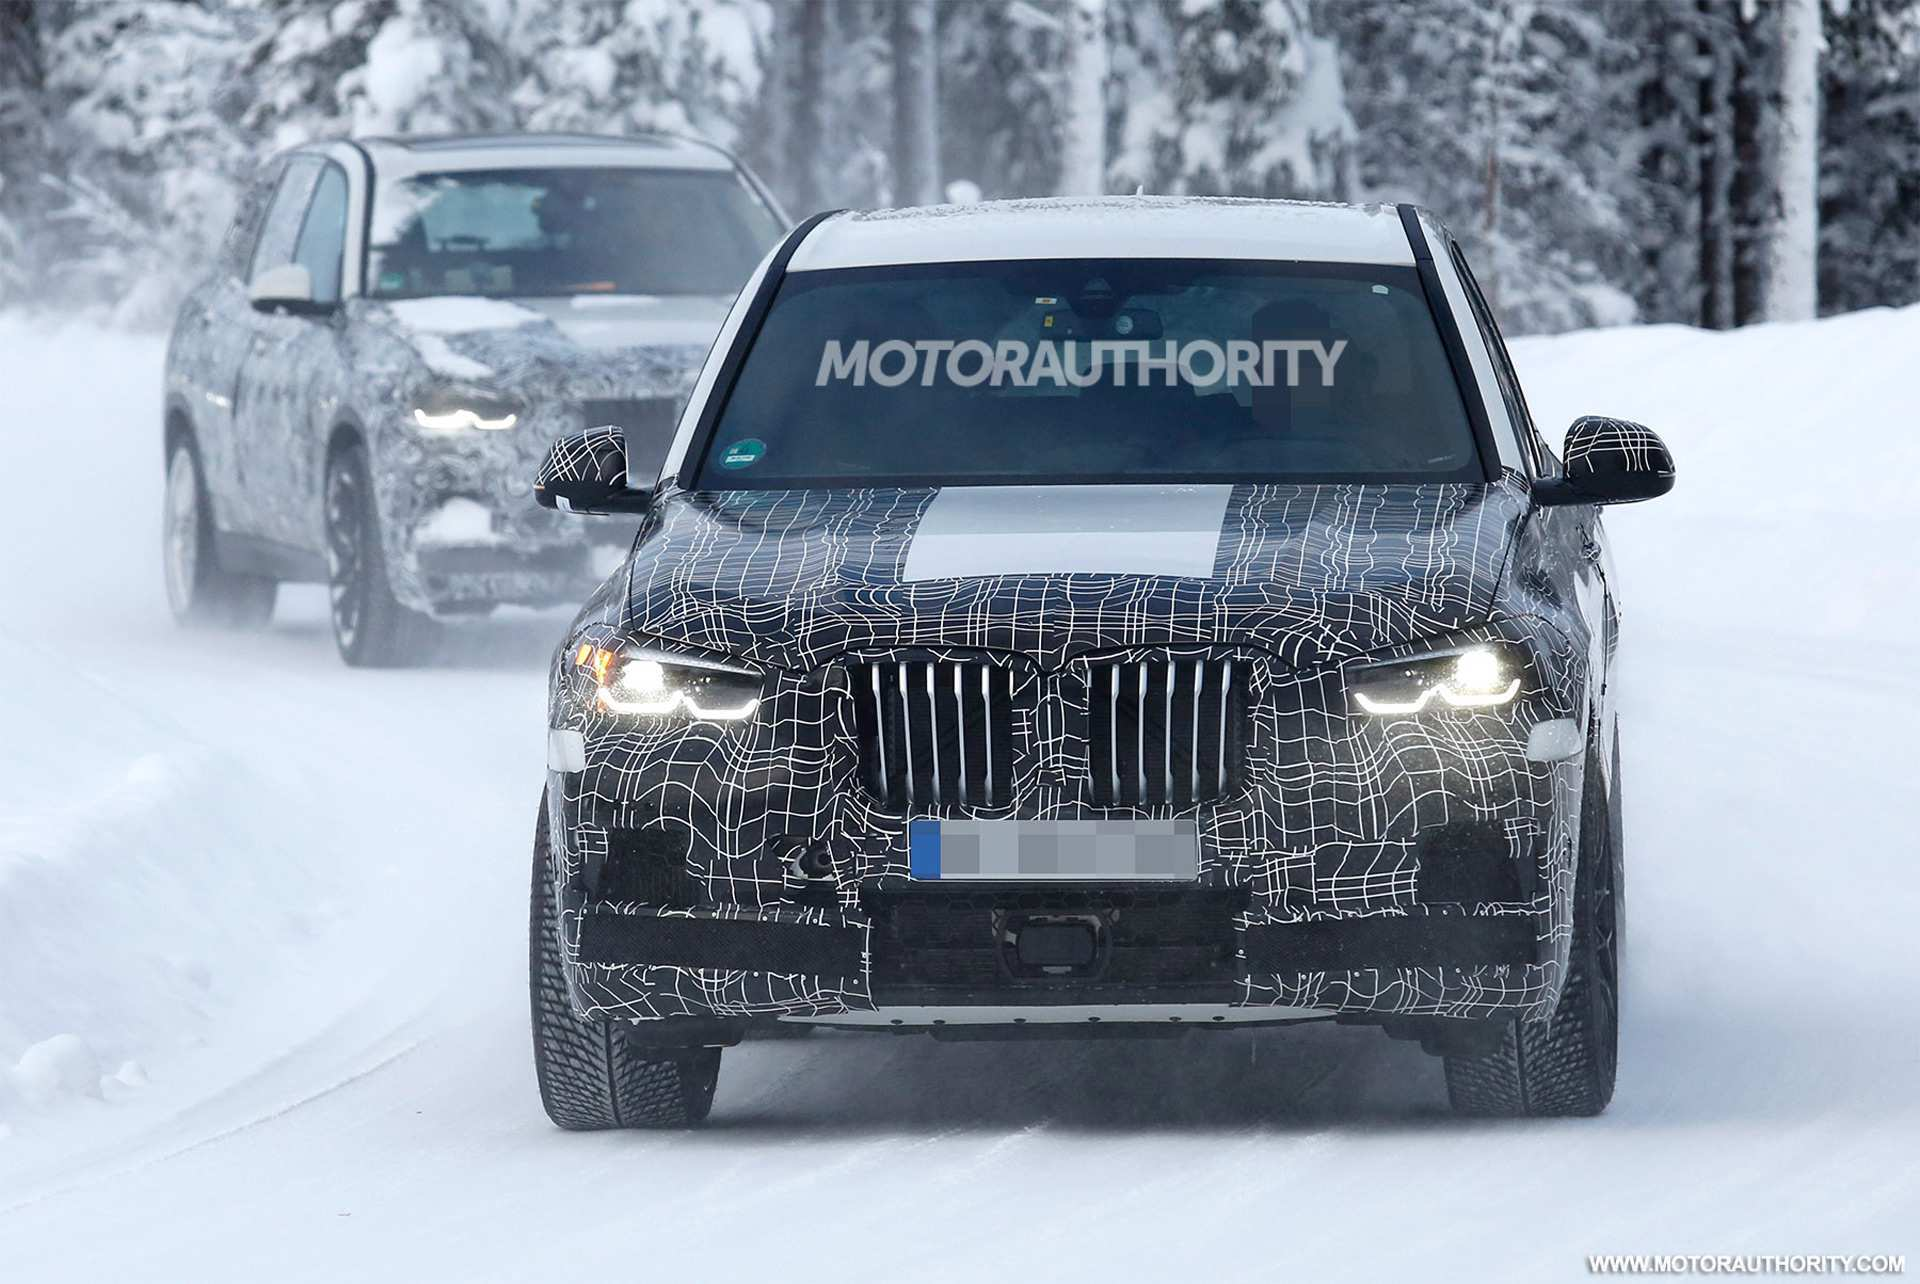 62 Gallery of 2020 Bmw X5M Interior for 2020 Bmw X5M